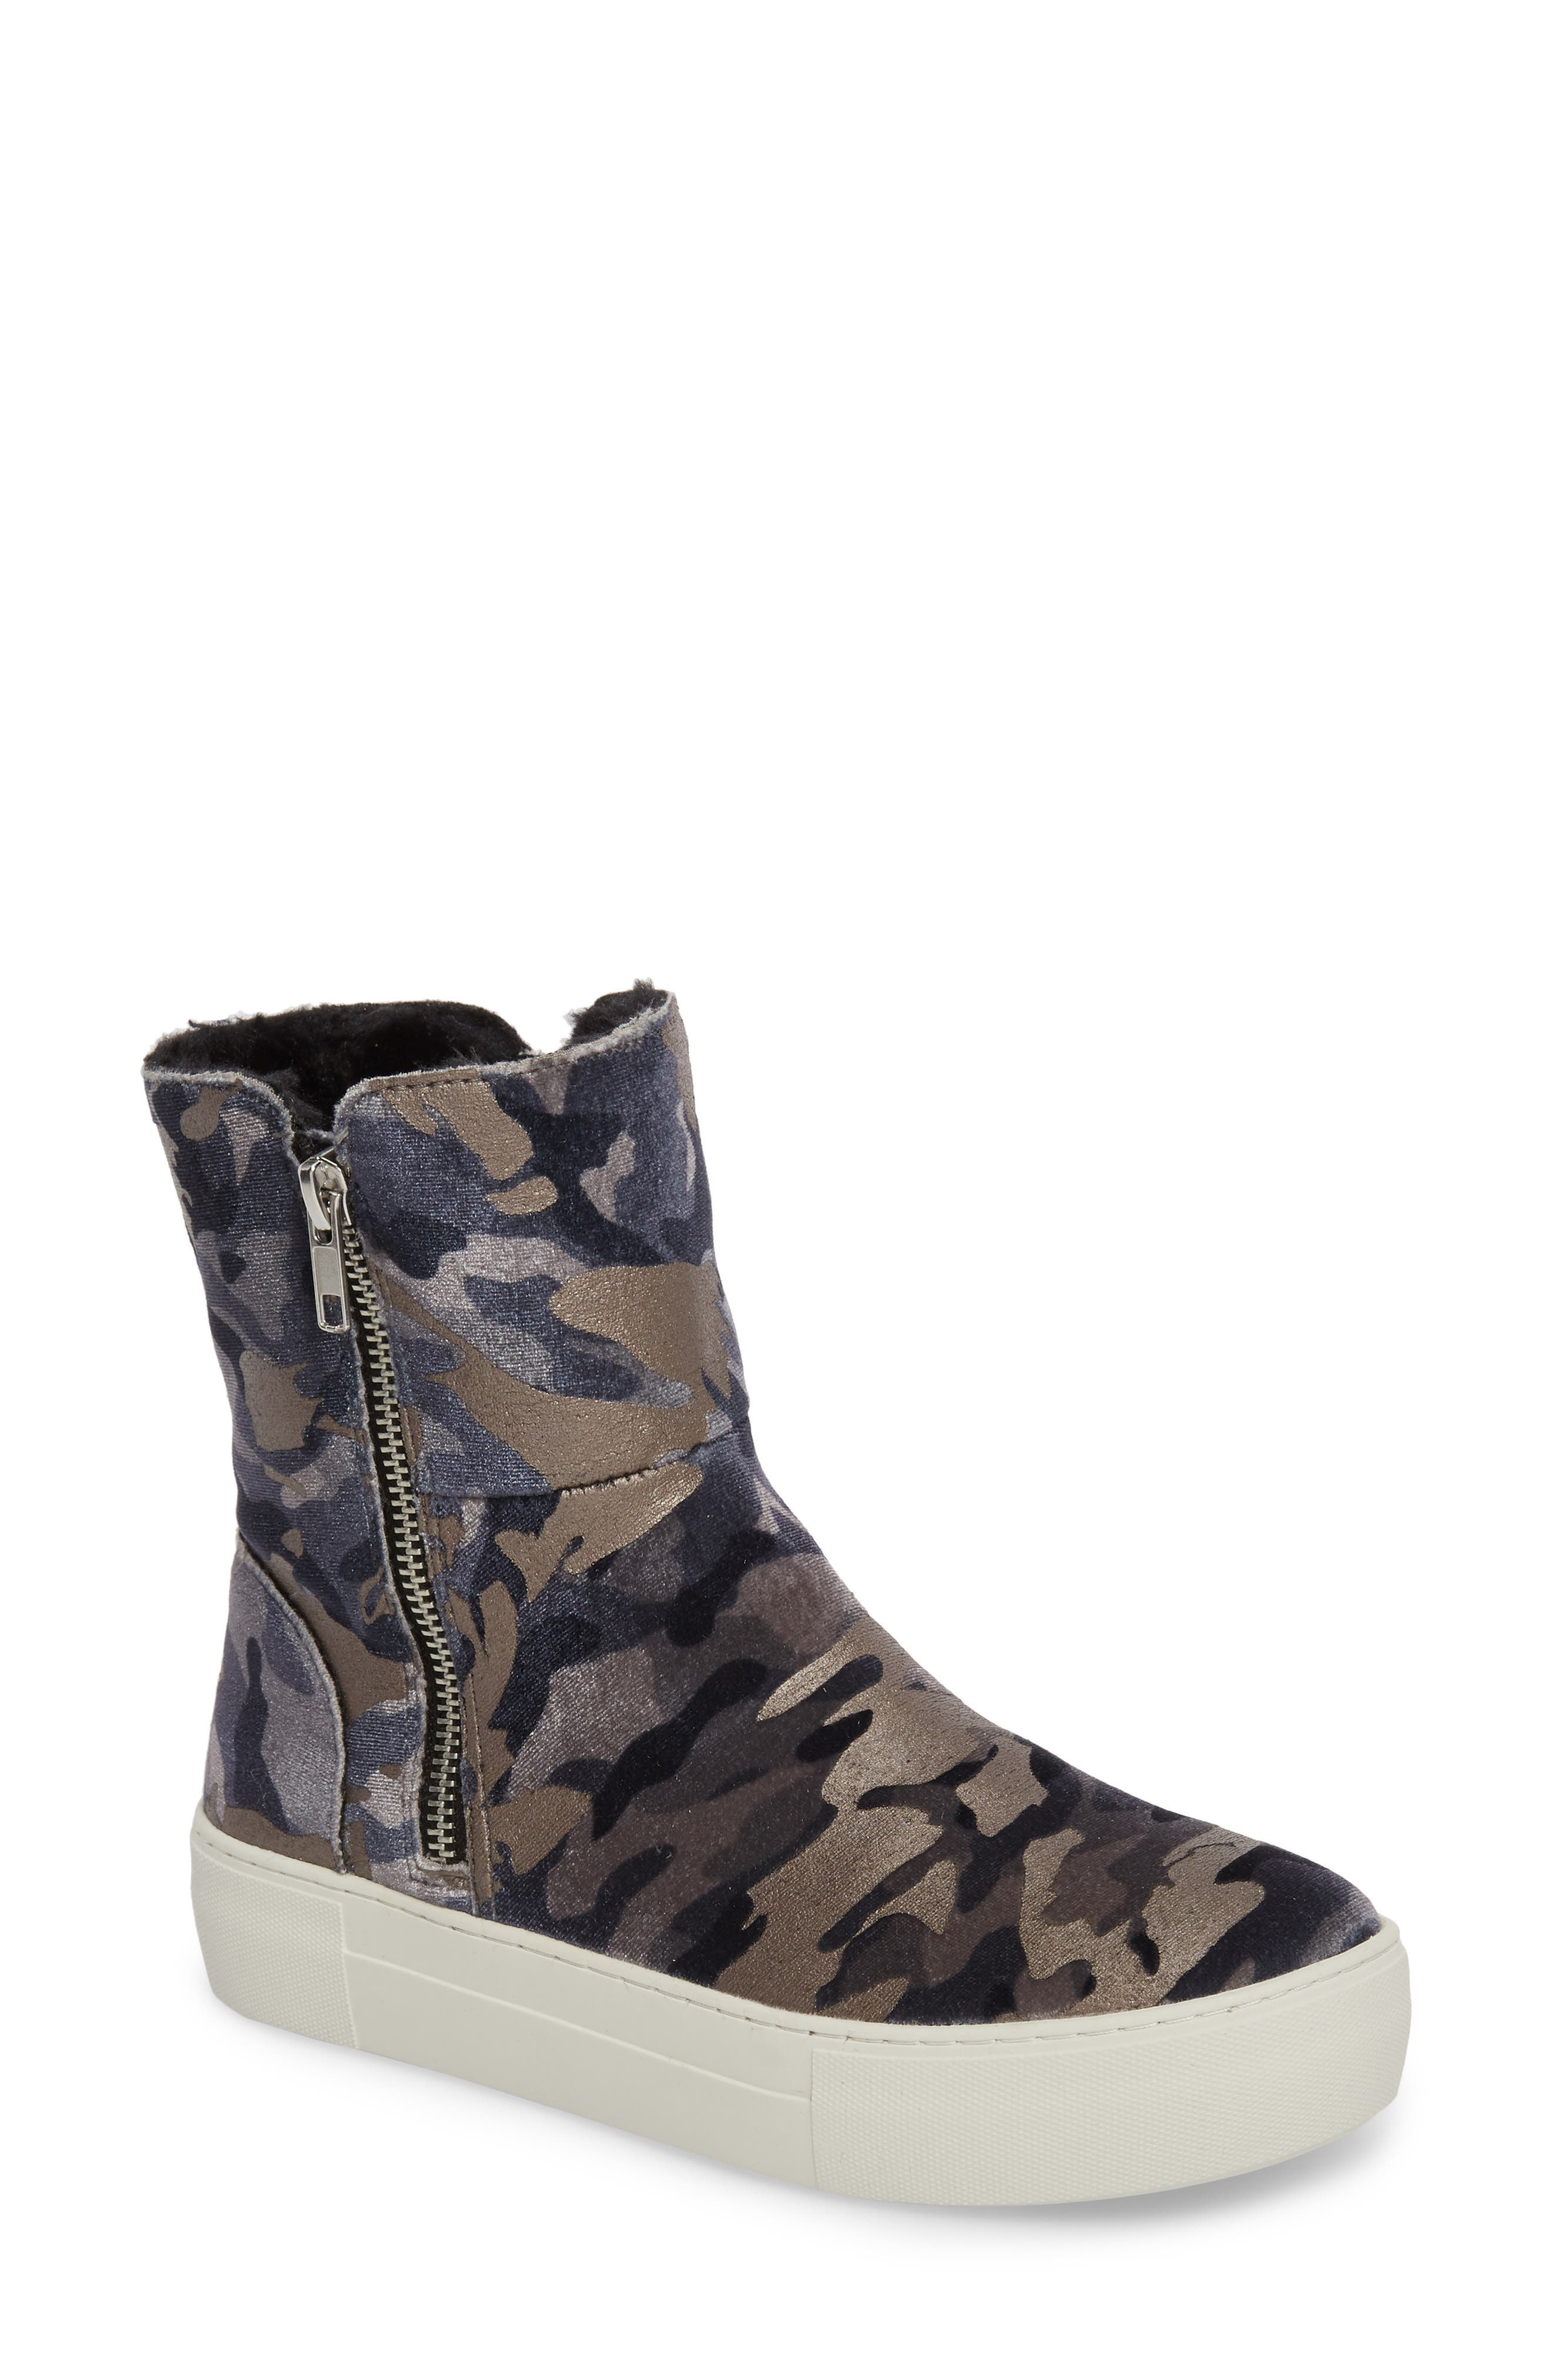 Garrson Sneaker Boot,                             Main thumbnail 1, color,                             Camouflage